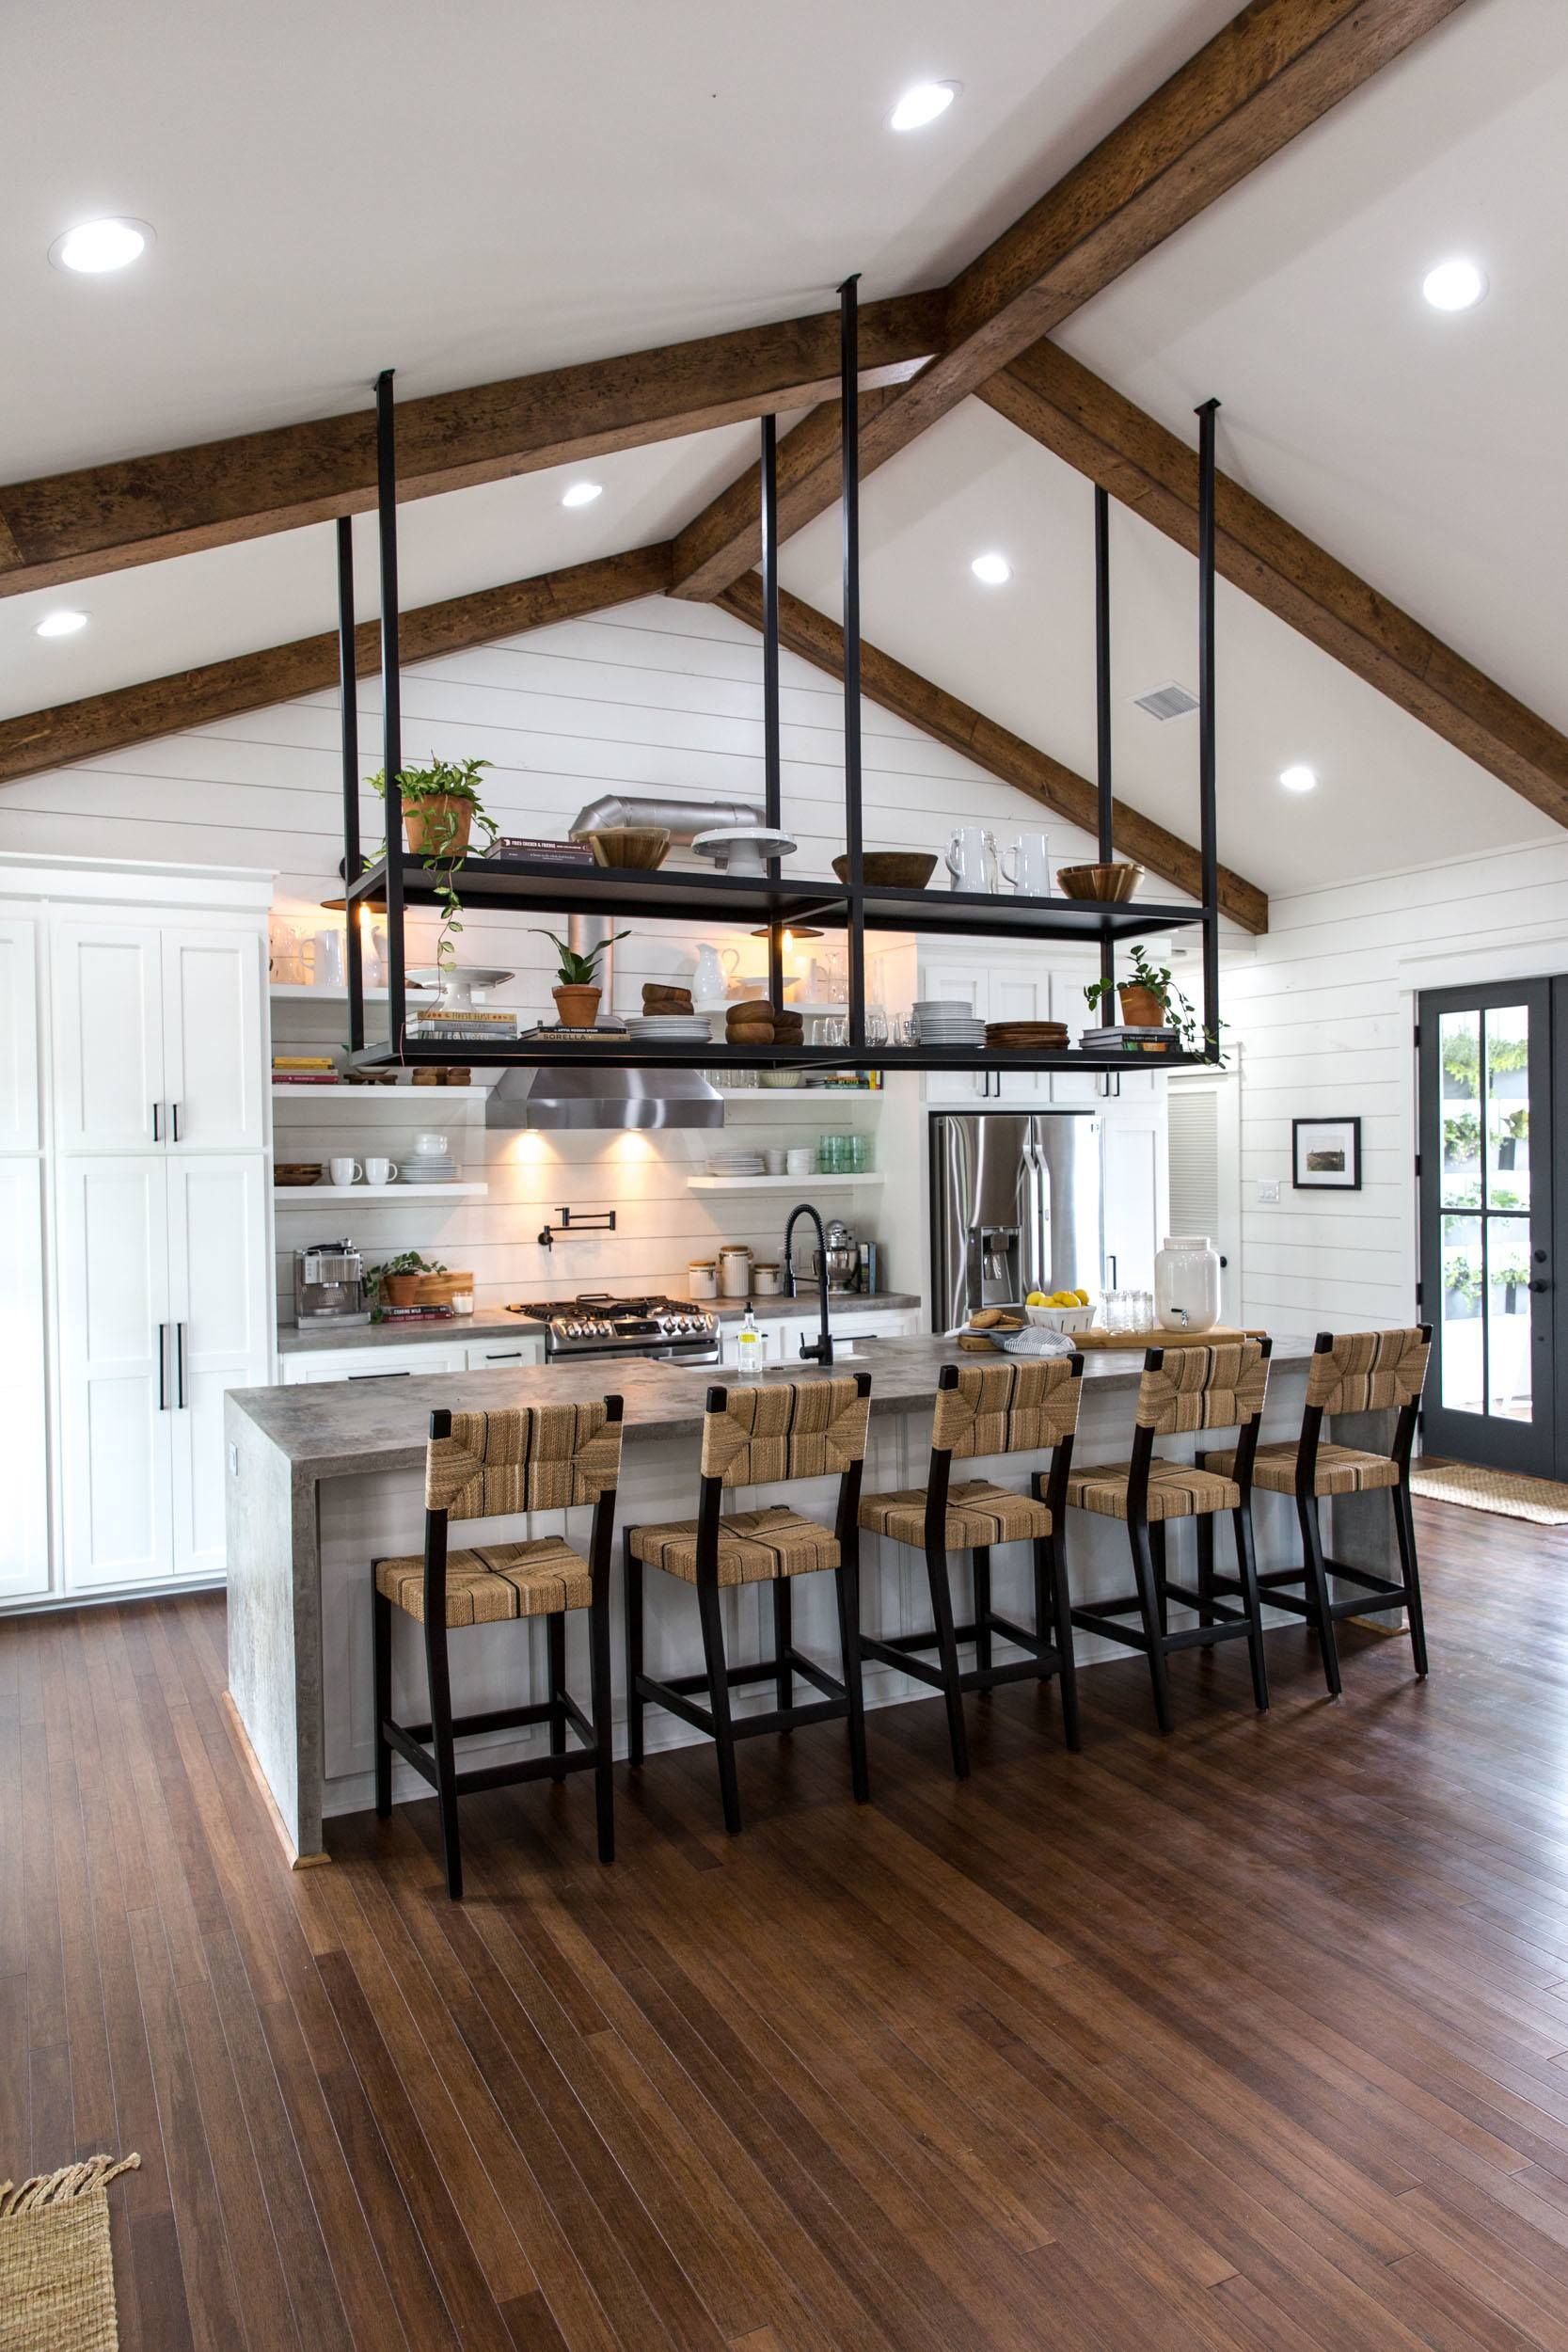 Fixer upper kitchens season 4 - Fixer Upper Season 4 Episode 16 The Little Shack On The Prairie Chip And